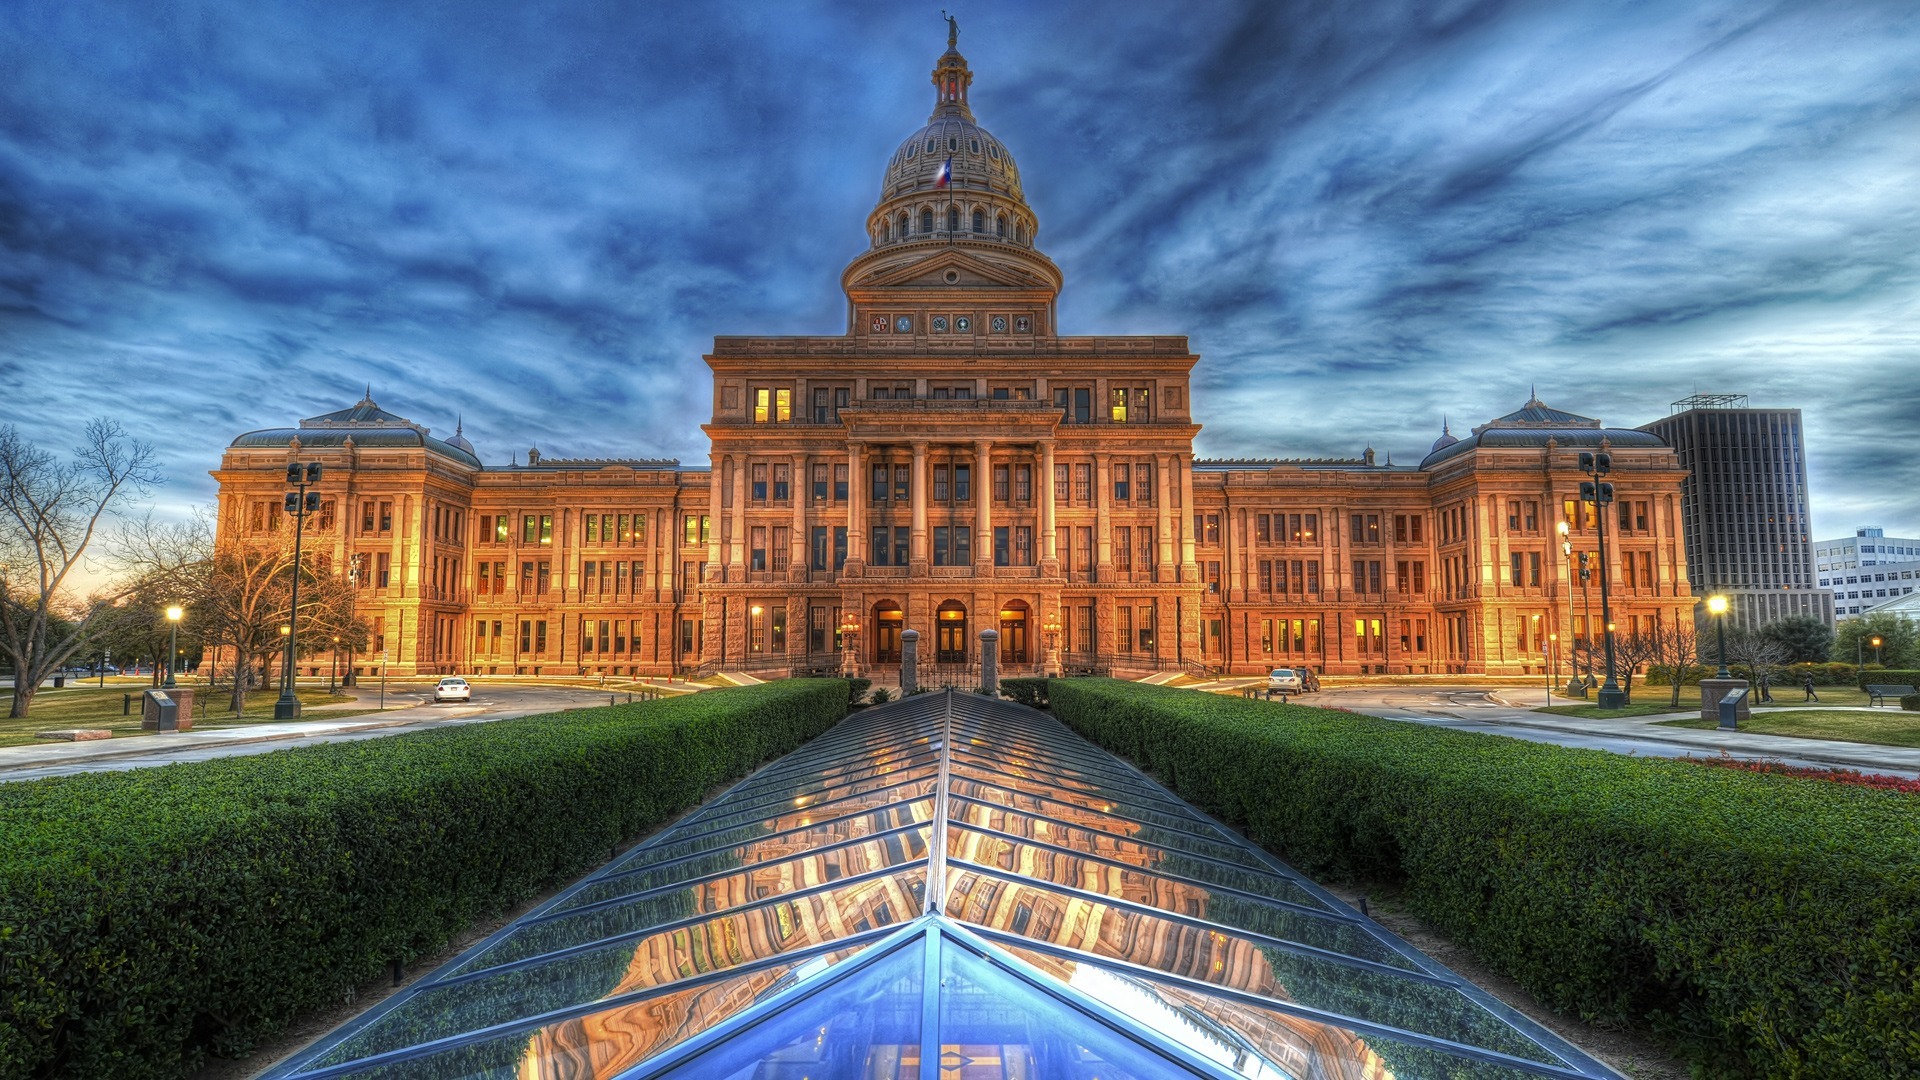 Texas State Capitol Wallpaper United States World Wallpapers in 1920x1080